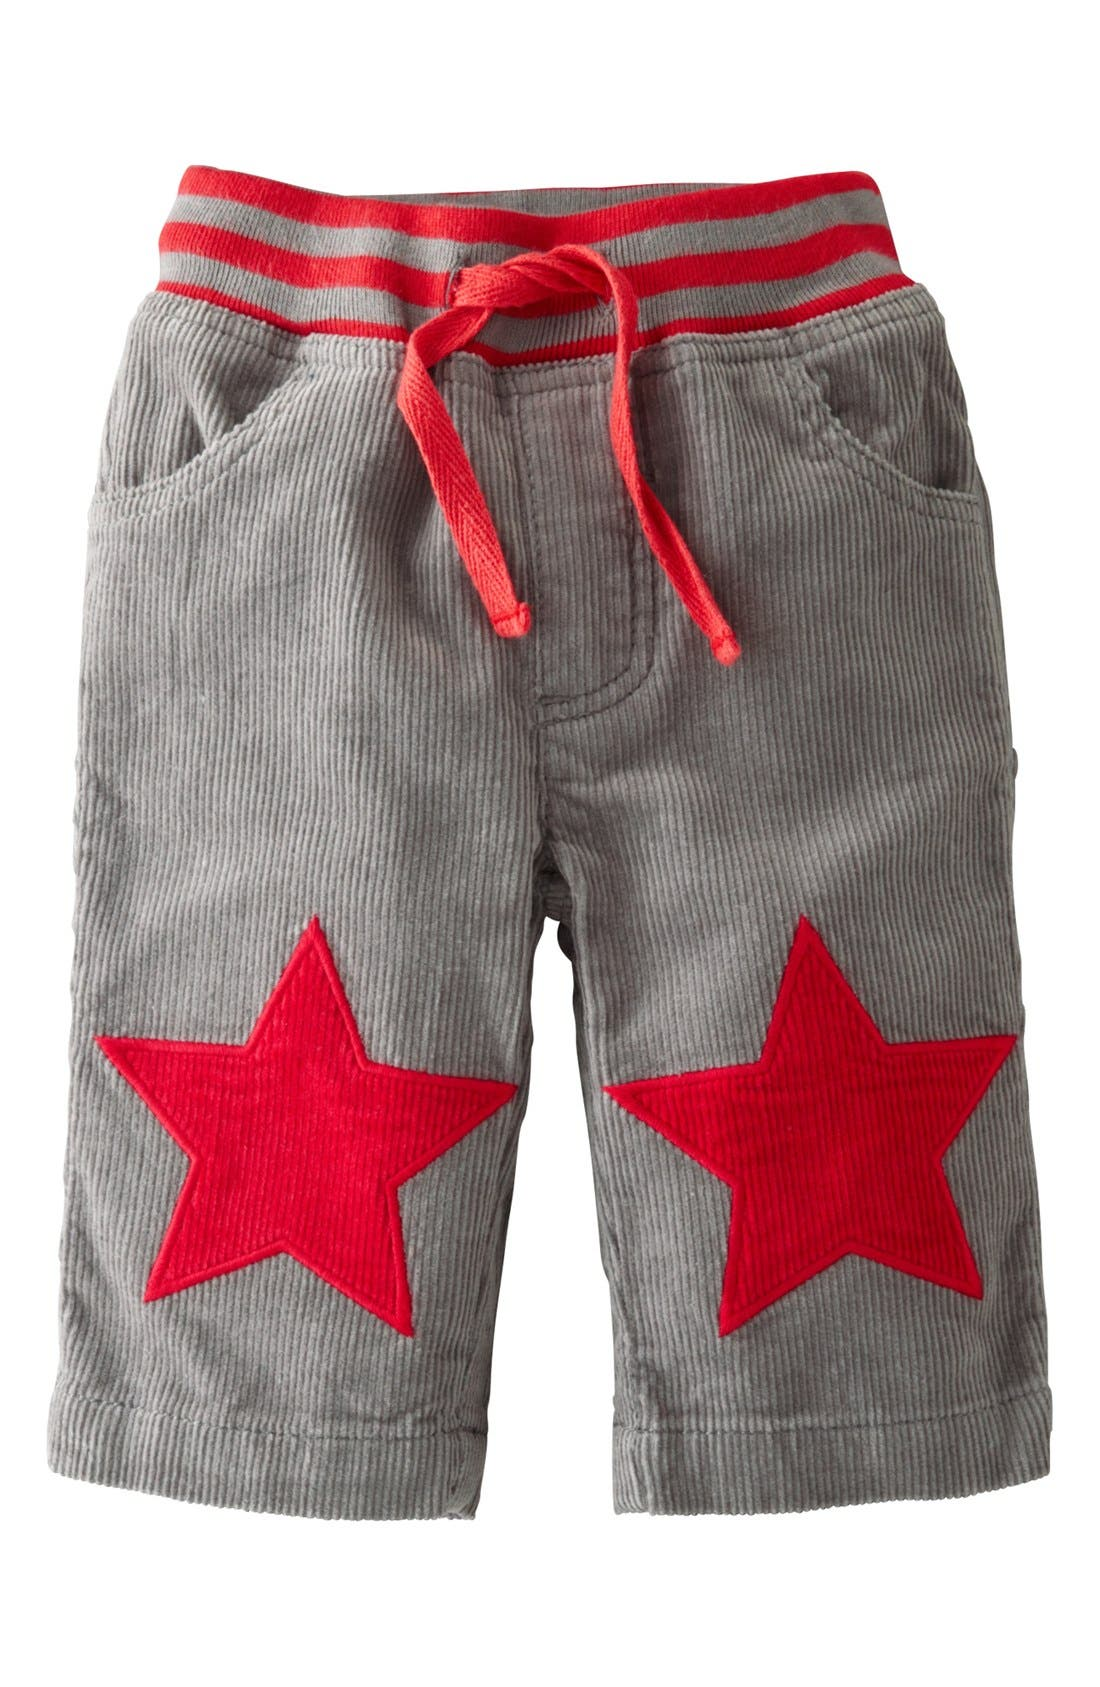 Alternate Image 1 Selected - Mini Boden 'Star Patch' Pants (Baby Boys)